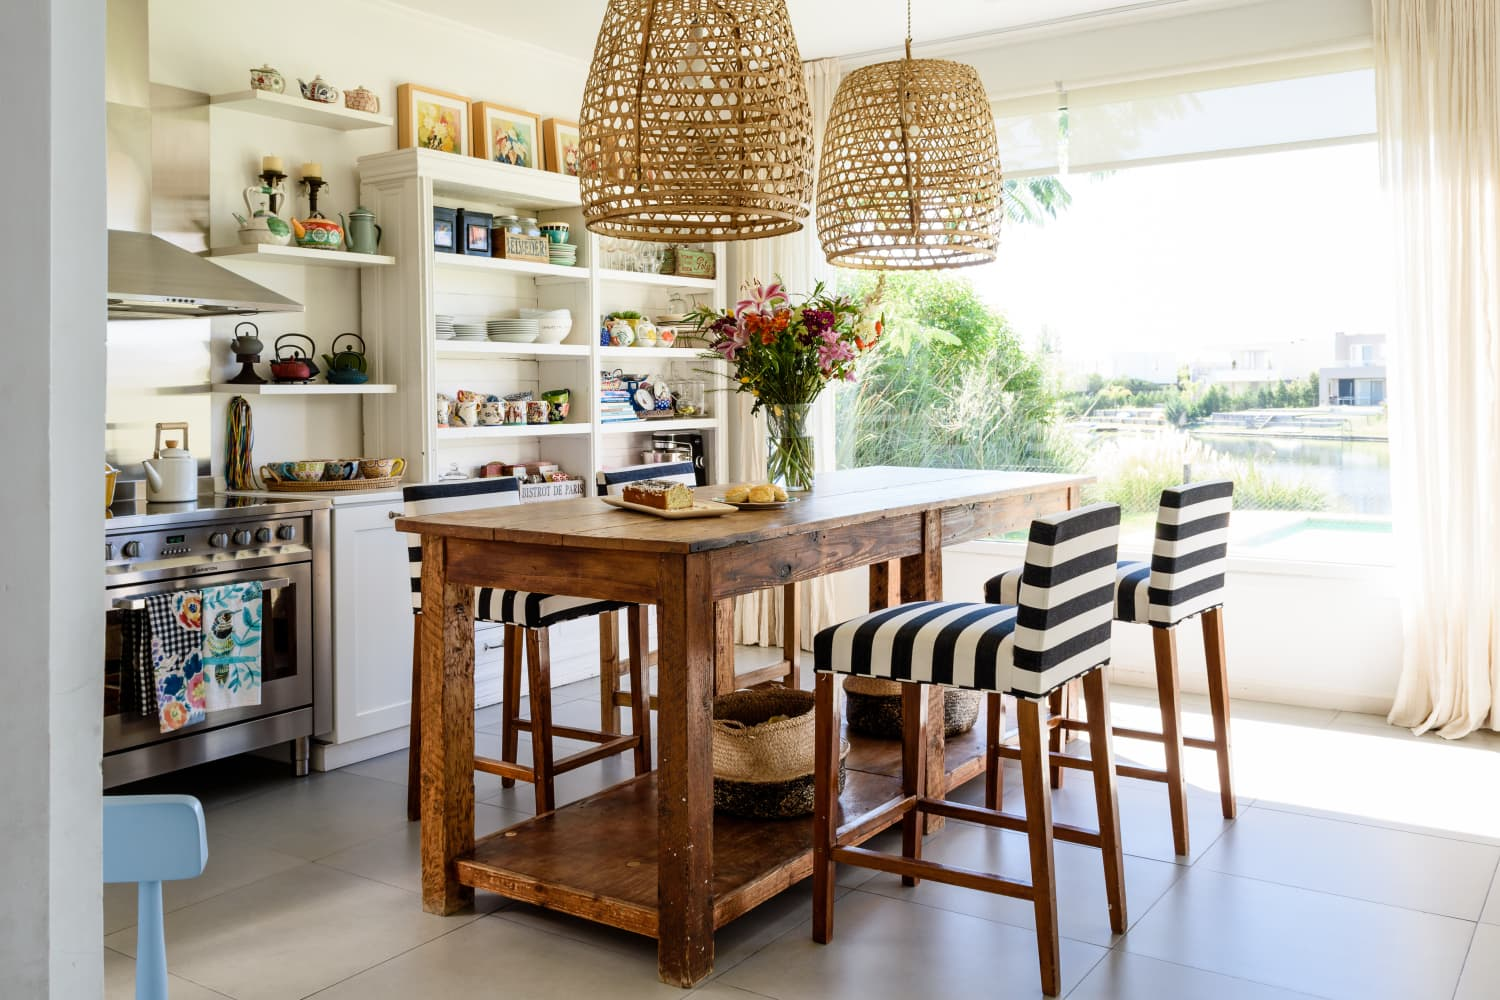 Rattan Pendants Aren't Going Anywhere — And We're Totally Cool with That